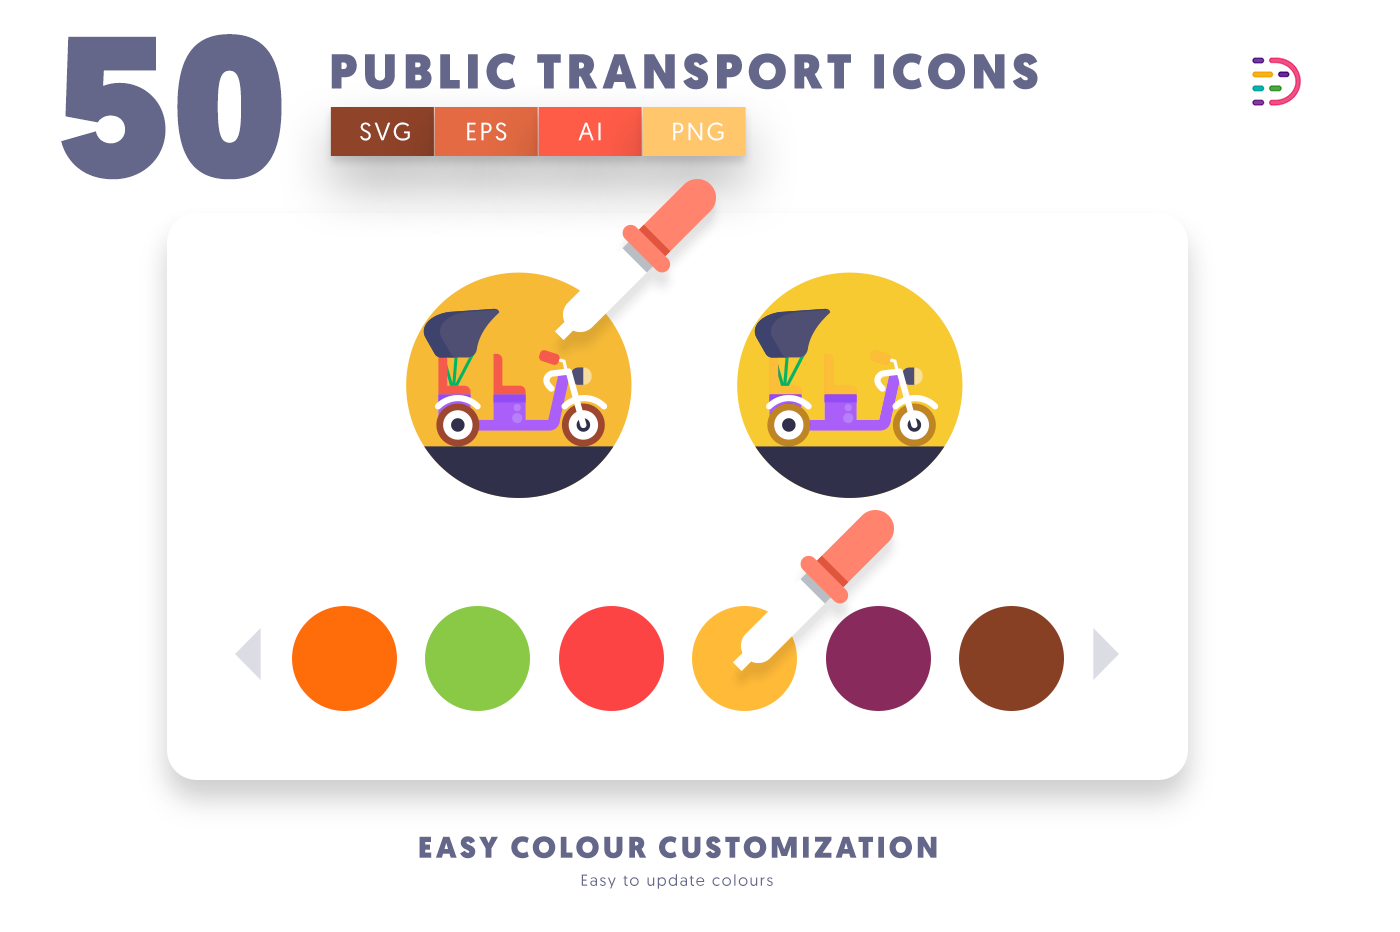 Customizable and vector 50 Public Transport Icons